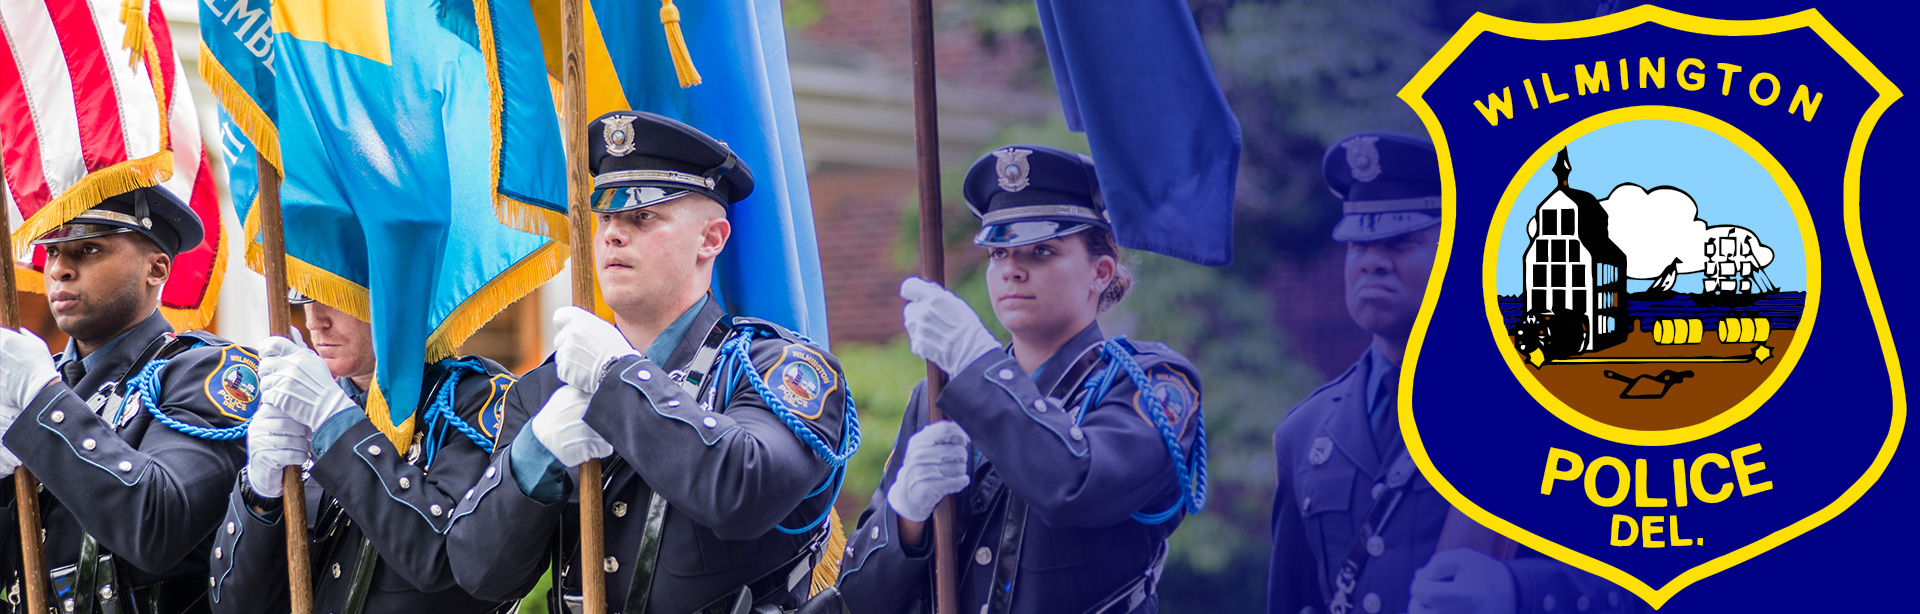 Photo of the color guard in procession during the Wilmington Police Academy ceremony.